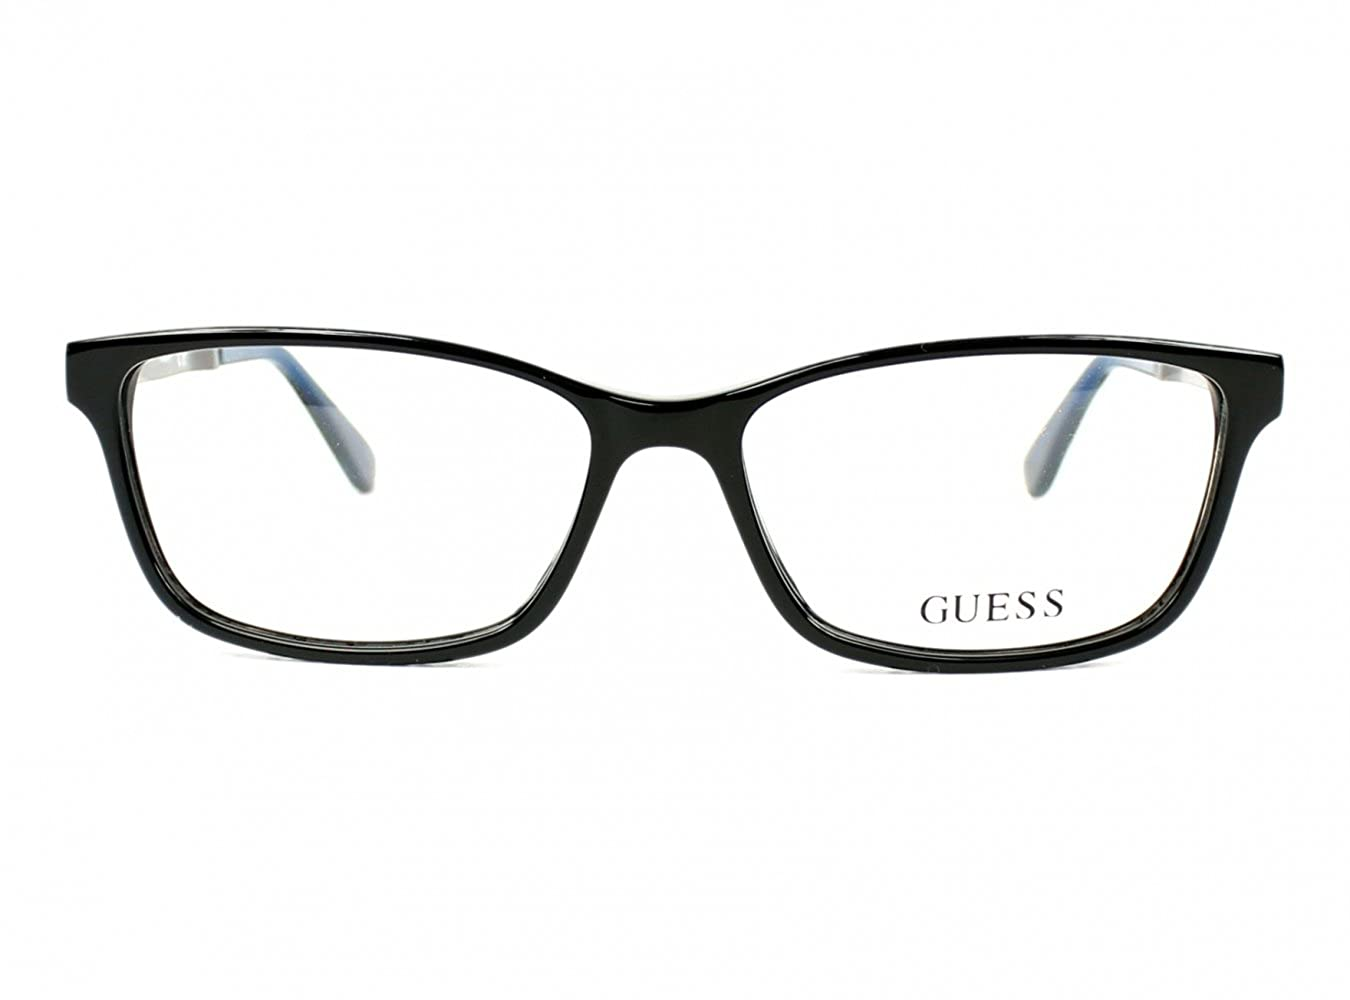 e2f62d6887 Eyeglasses Guess GU 2628 001 shiny black at Amazon Men s Clothing store